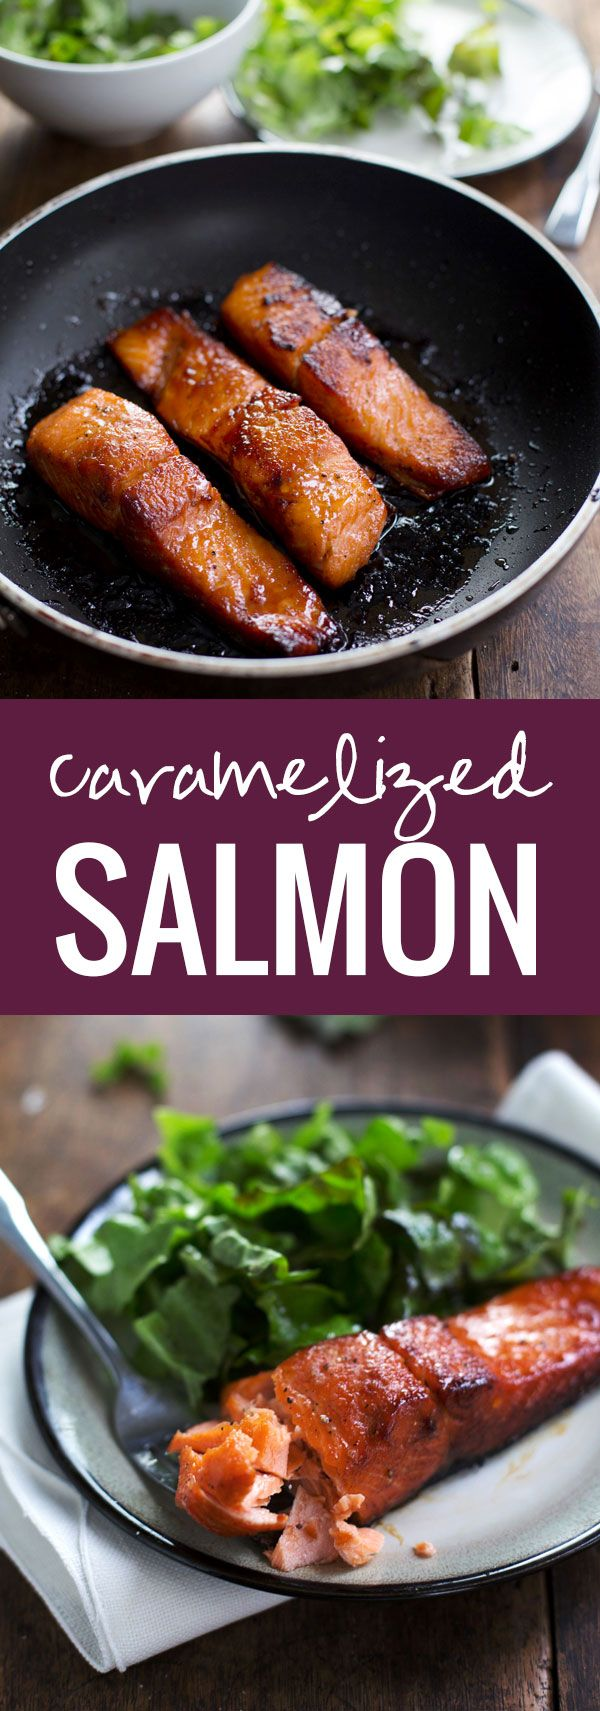 Caramelized Salmon - Five ingredients. Twenty minutes. Perfect texture. Addicting flavor. Healthy for your bod. Pretty to look at. http://samscutlerydepot.com/product/15-piece-crimson-knife-set-includes-free-roll-bag-and-7-edge-guards/